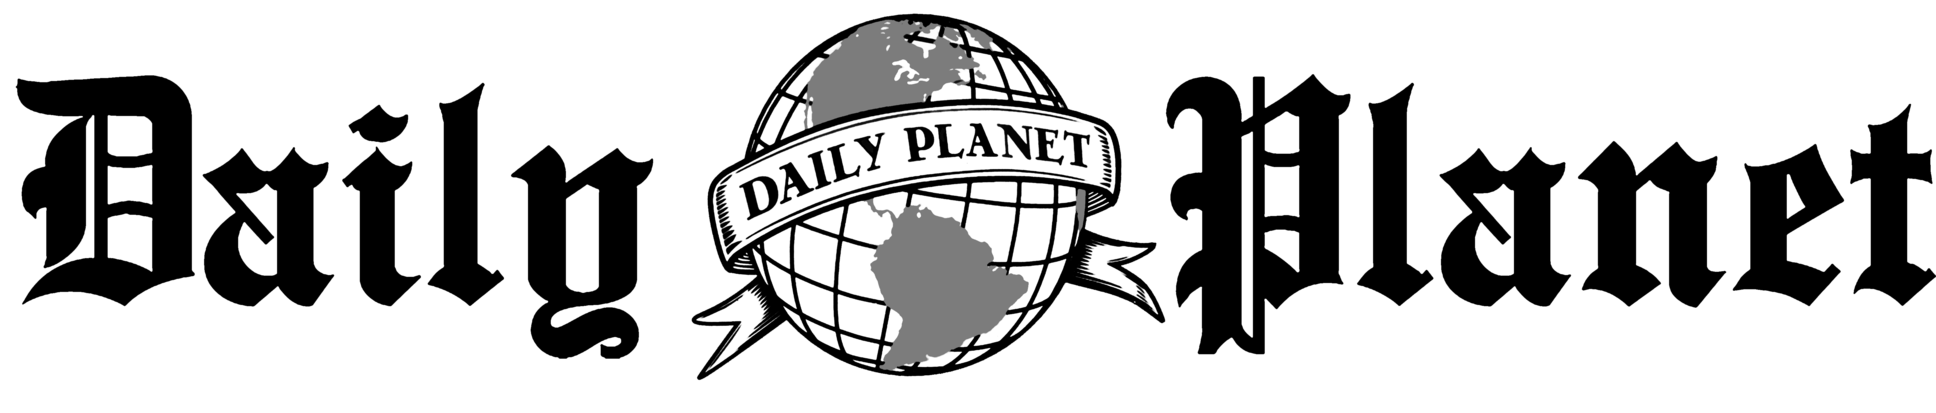 Daily Planet Logo 1932 Prototype by NoahLC on DeviantArt.